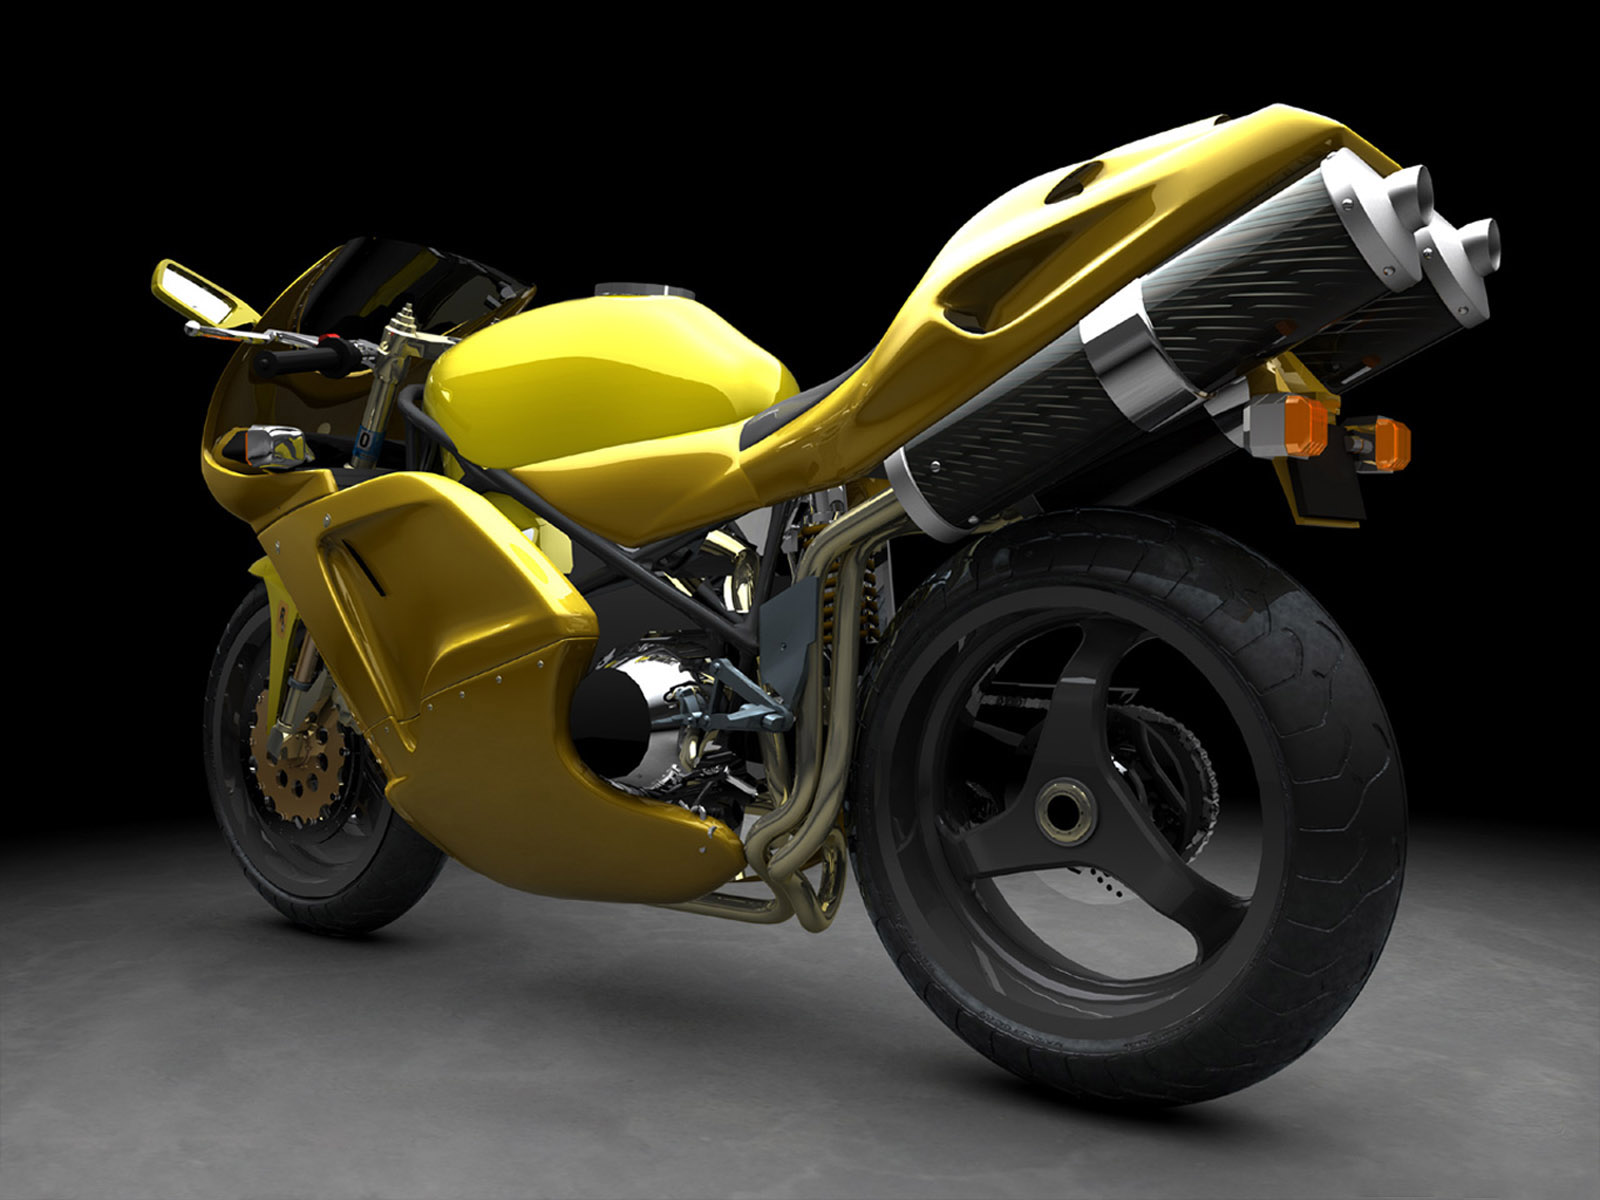 http://2.bp.blogspot.com/-O9DkQcpXdD8/T-lyFTvKa9I/AAAAAAAABmo/p__NuQL1DsA/s1600/yellow_sports_bike_desktop_1600x1200_wallpaper-189732.jpeg